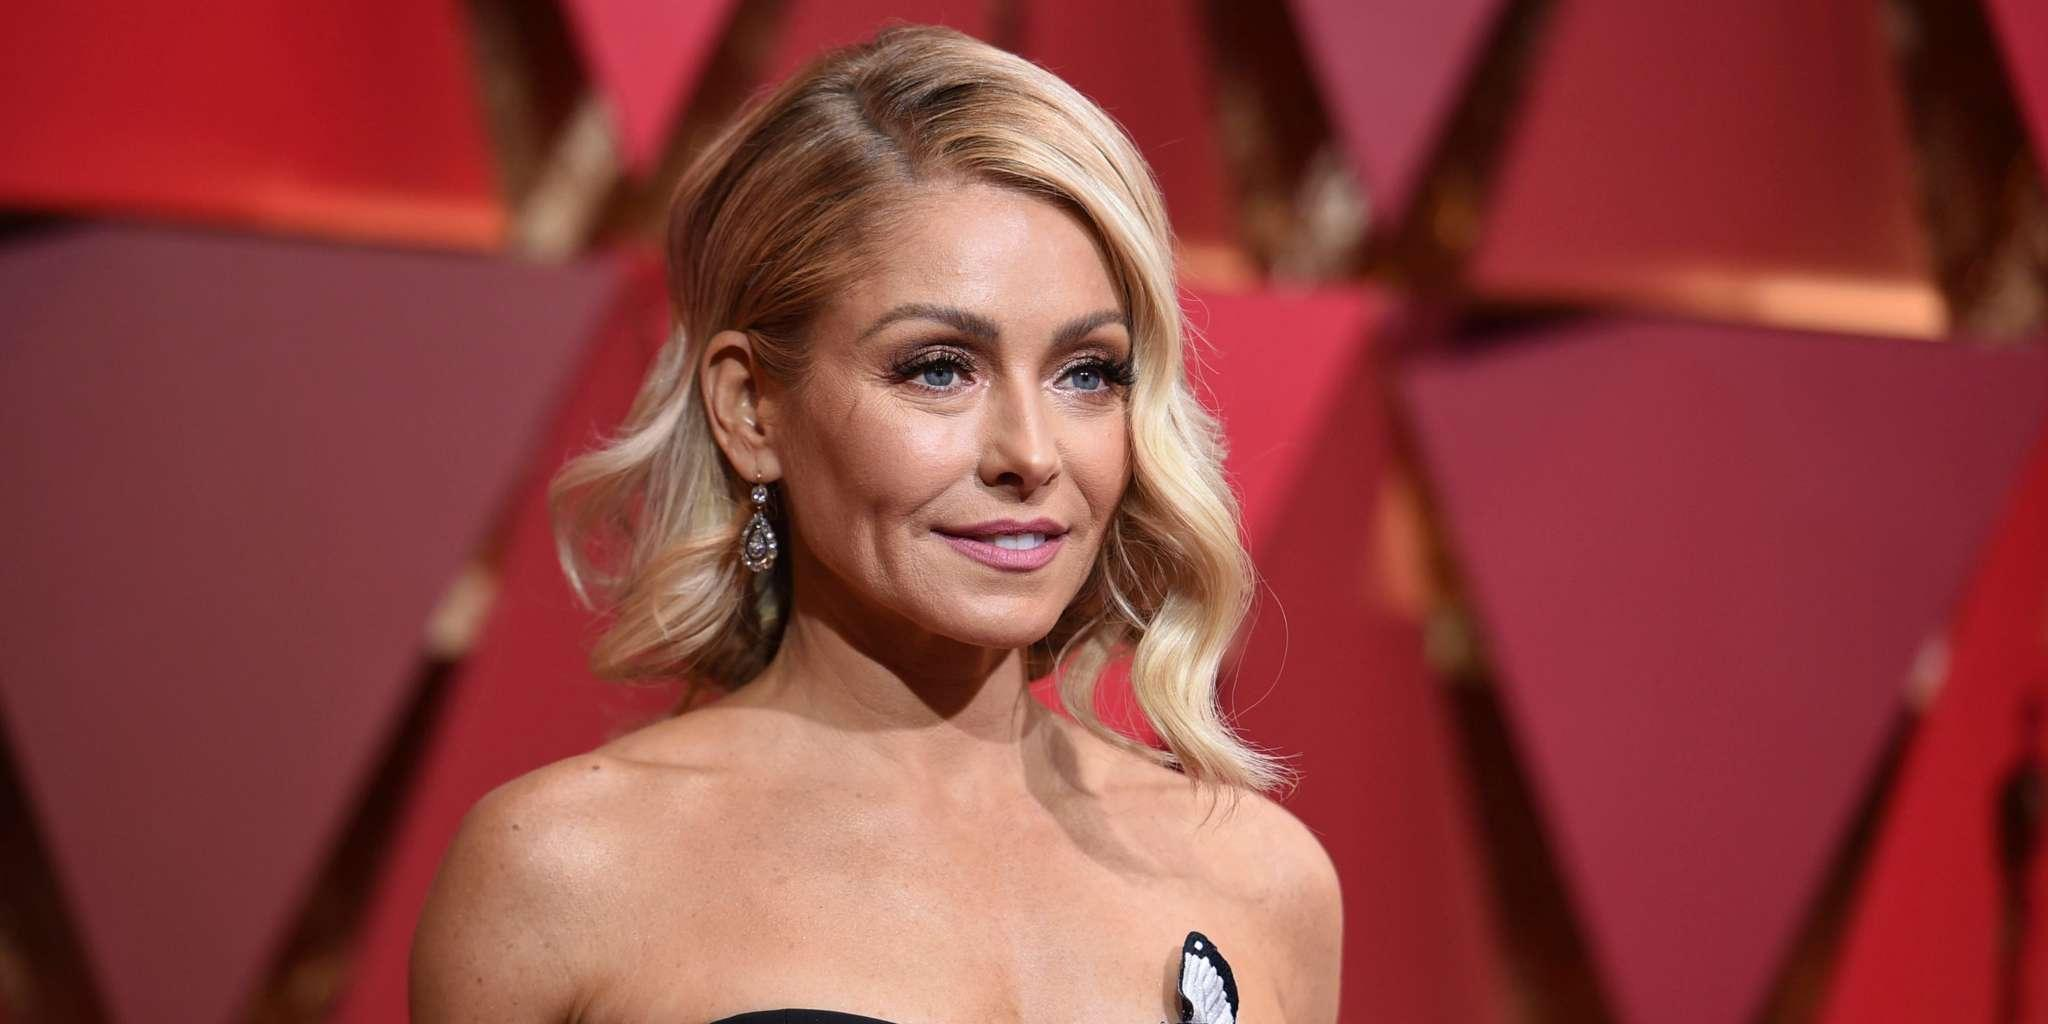 Kelly Ripa Admits To Cutting Her Hair With Kitchen Scissors And Opens Up About Her Grey Hair During Quarantine!